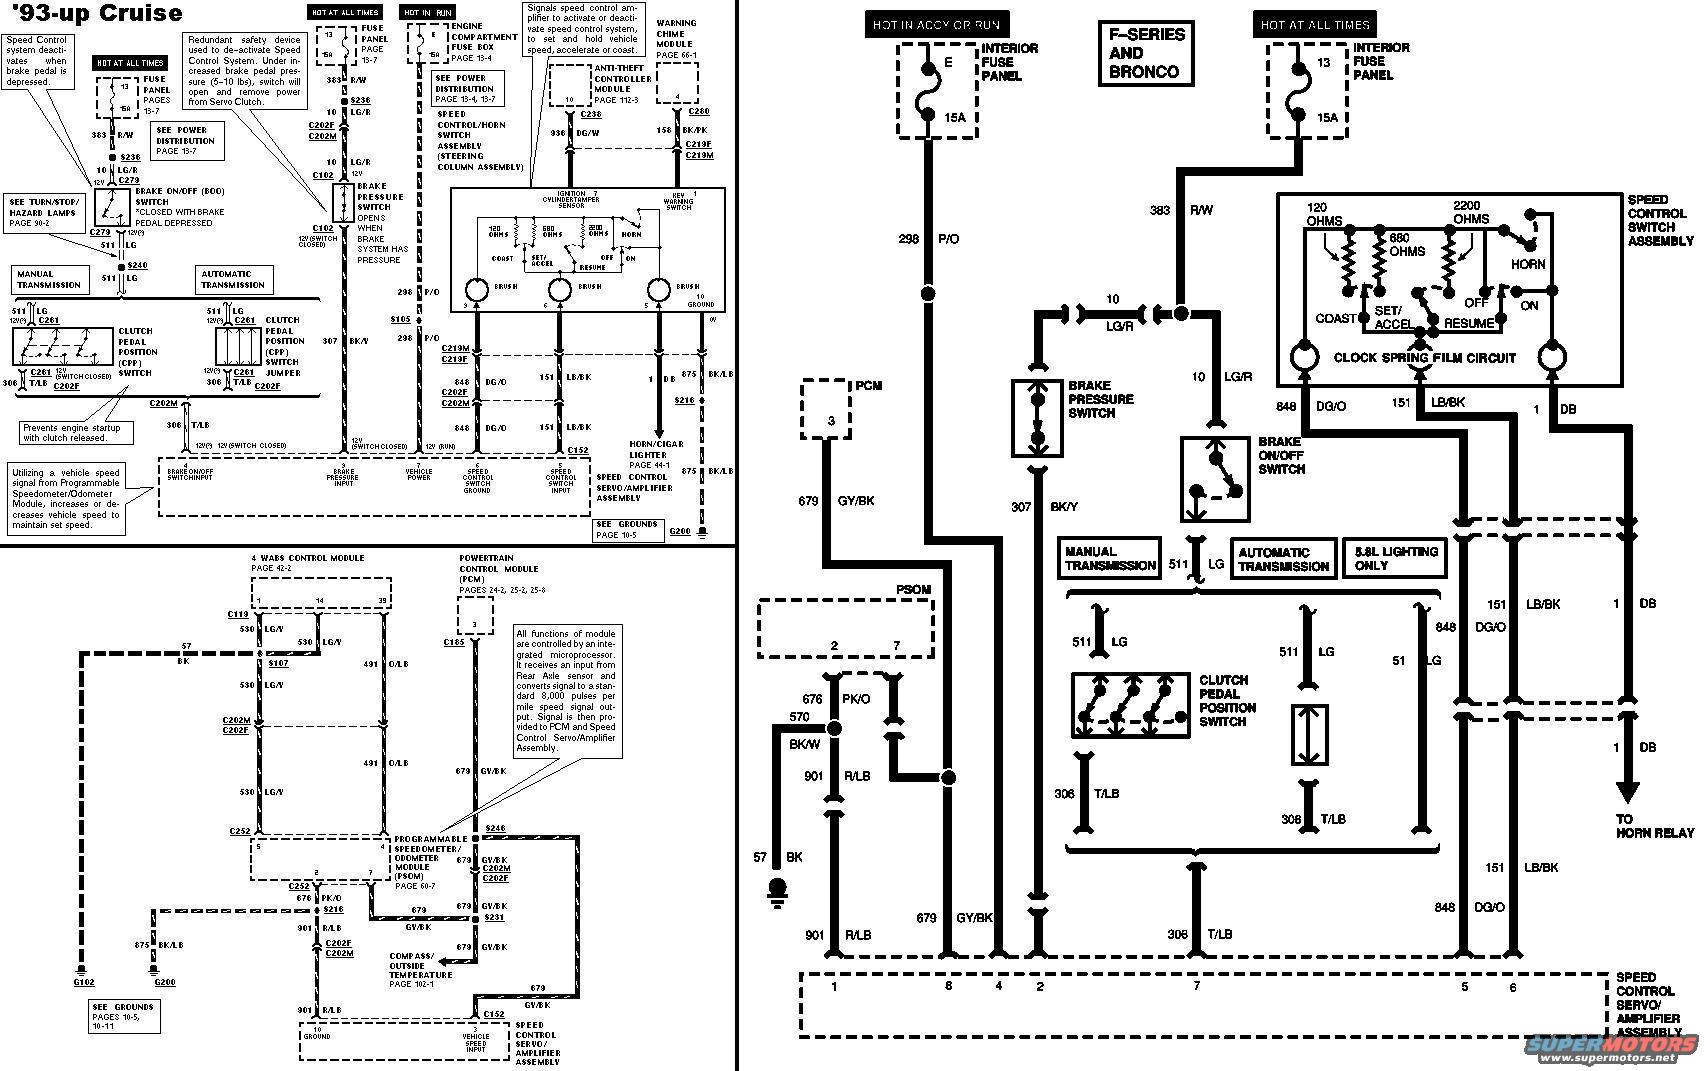 cruisee 93 ford f250 cruise control problem ford truck enthusiasts forums 2004 ford escape cruise control wire diagram at crackthecode.co